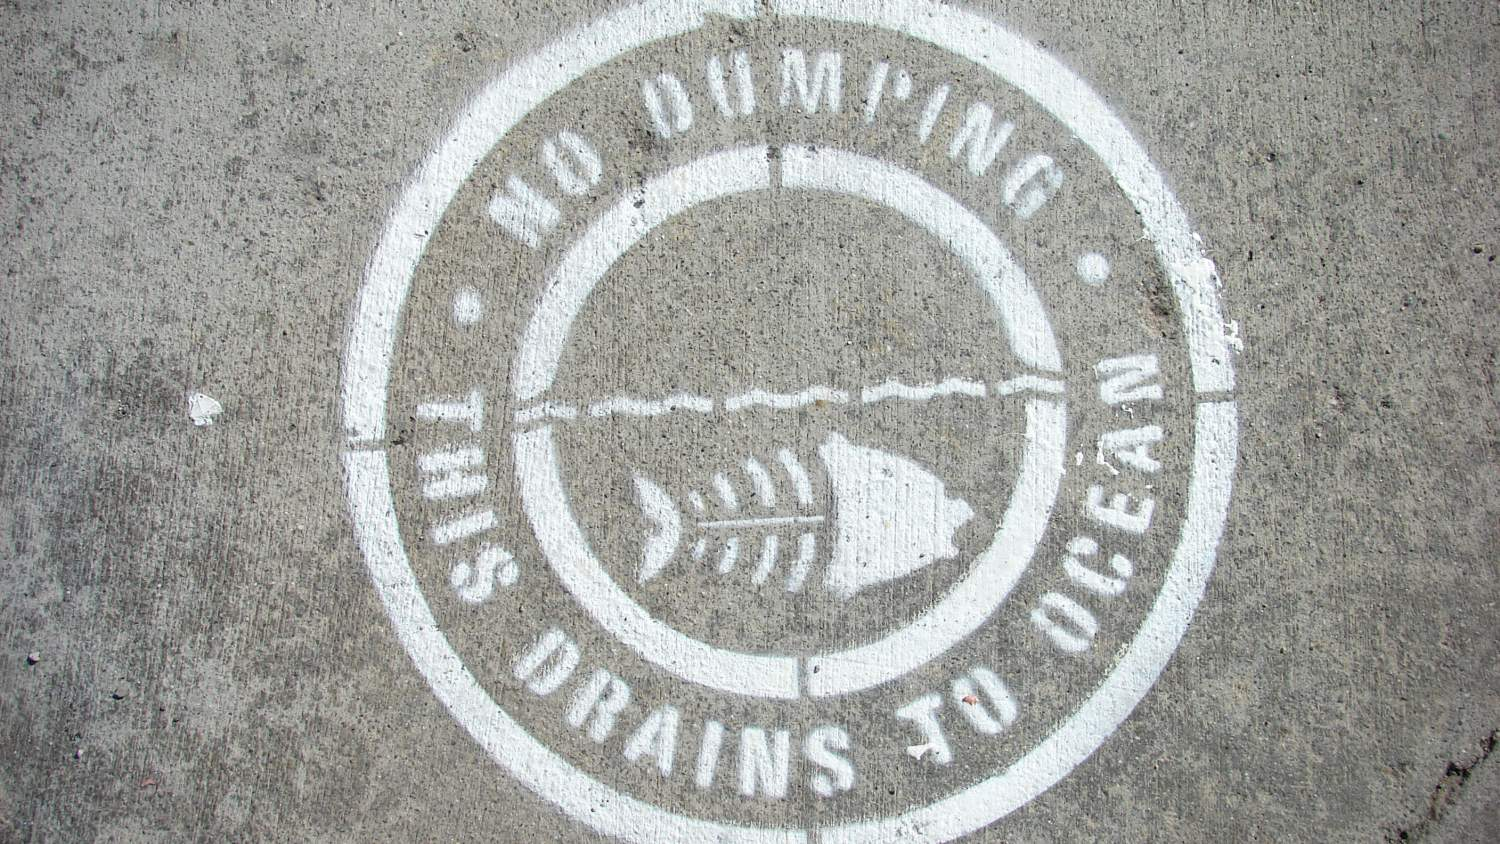 No dumping; this drains to ocean